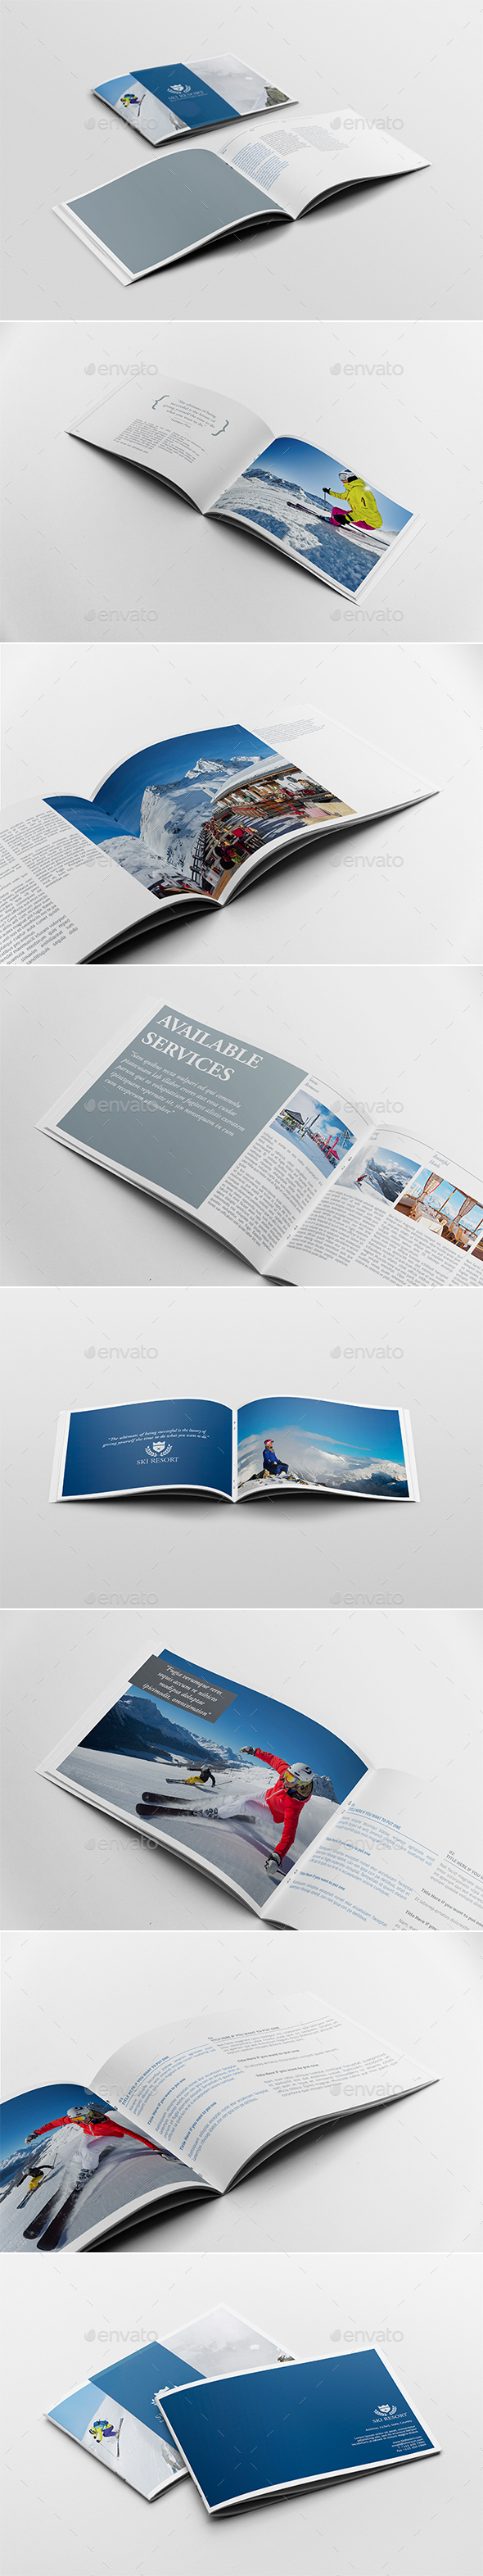 Travel Brochure / Guide Template - Brochures Print Templates